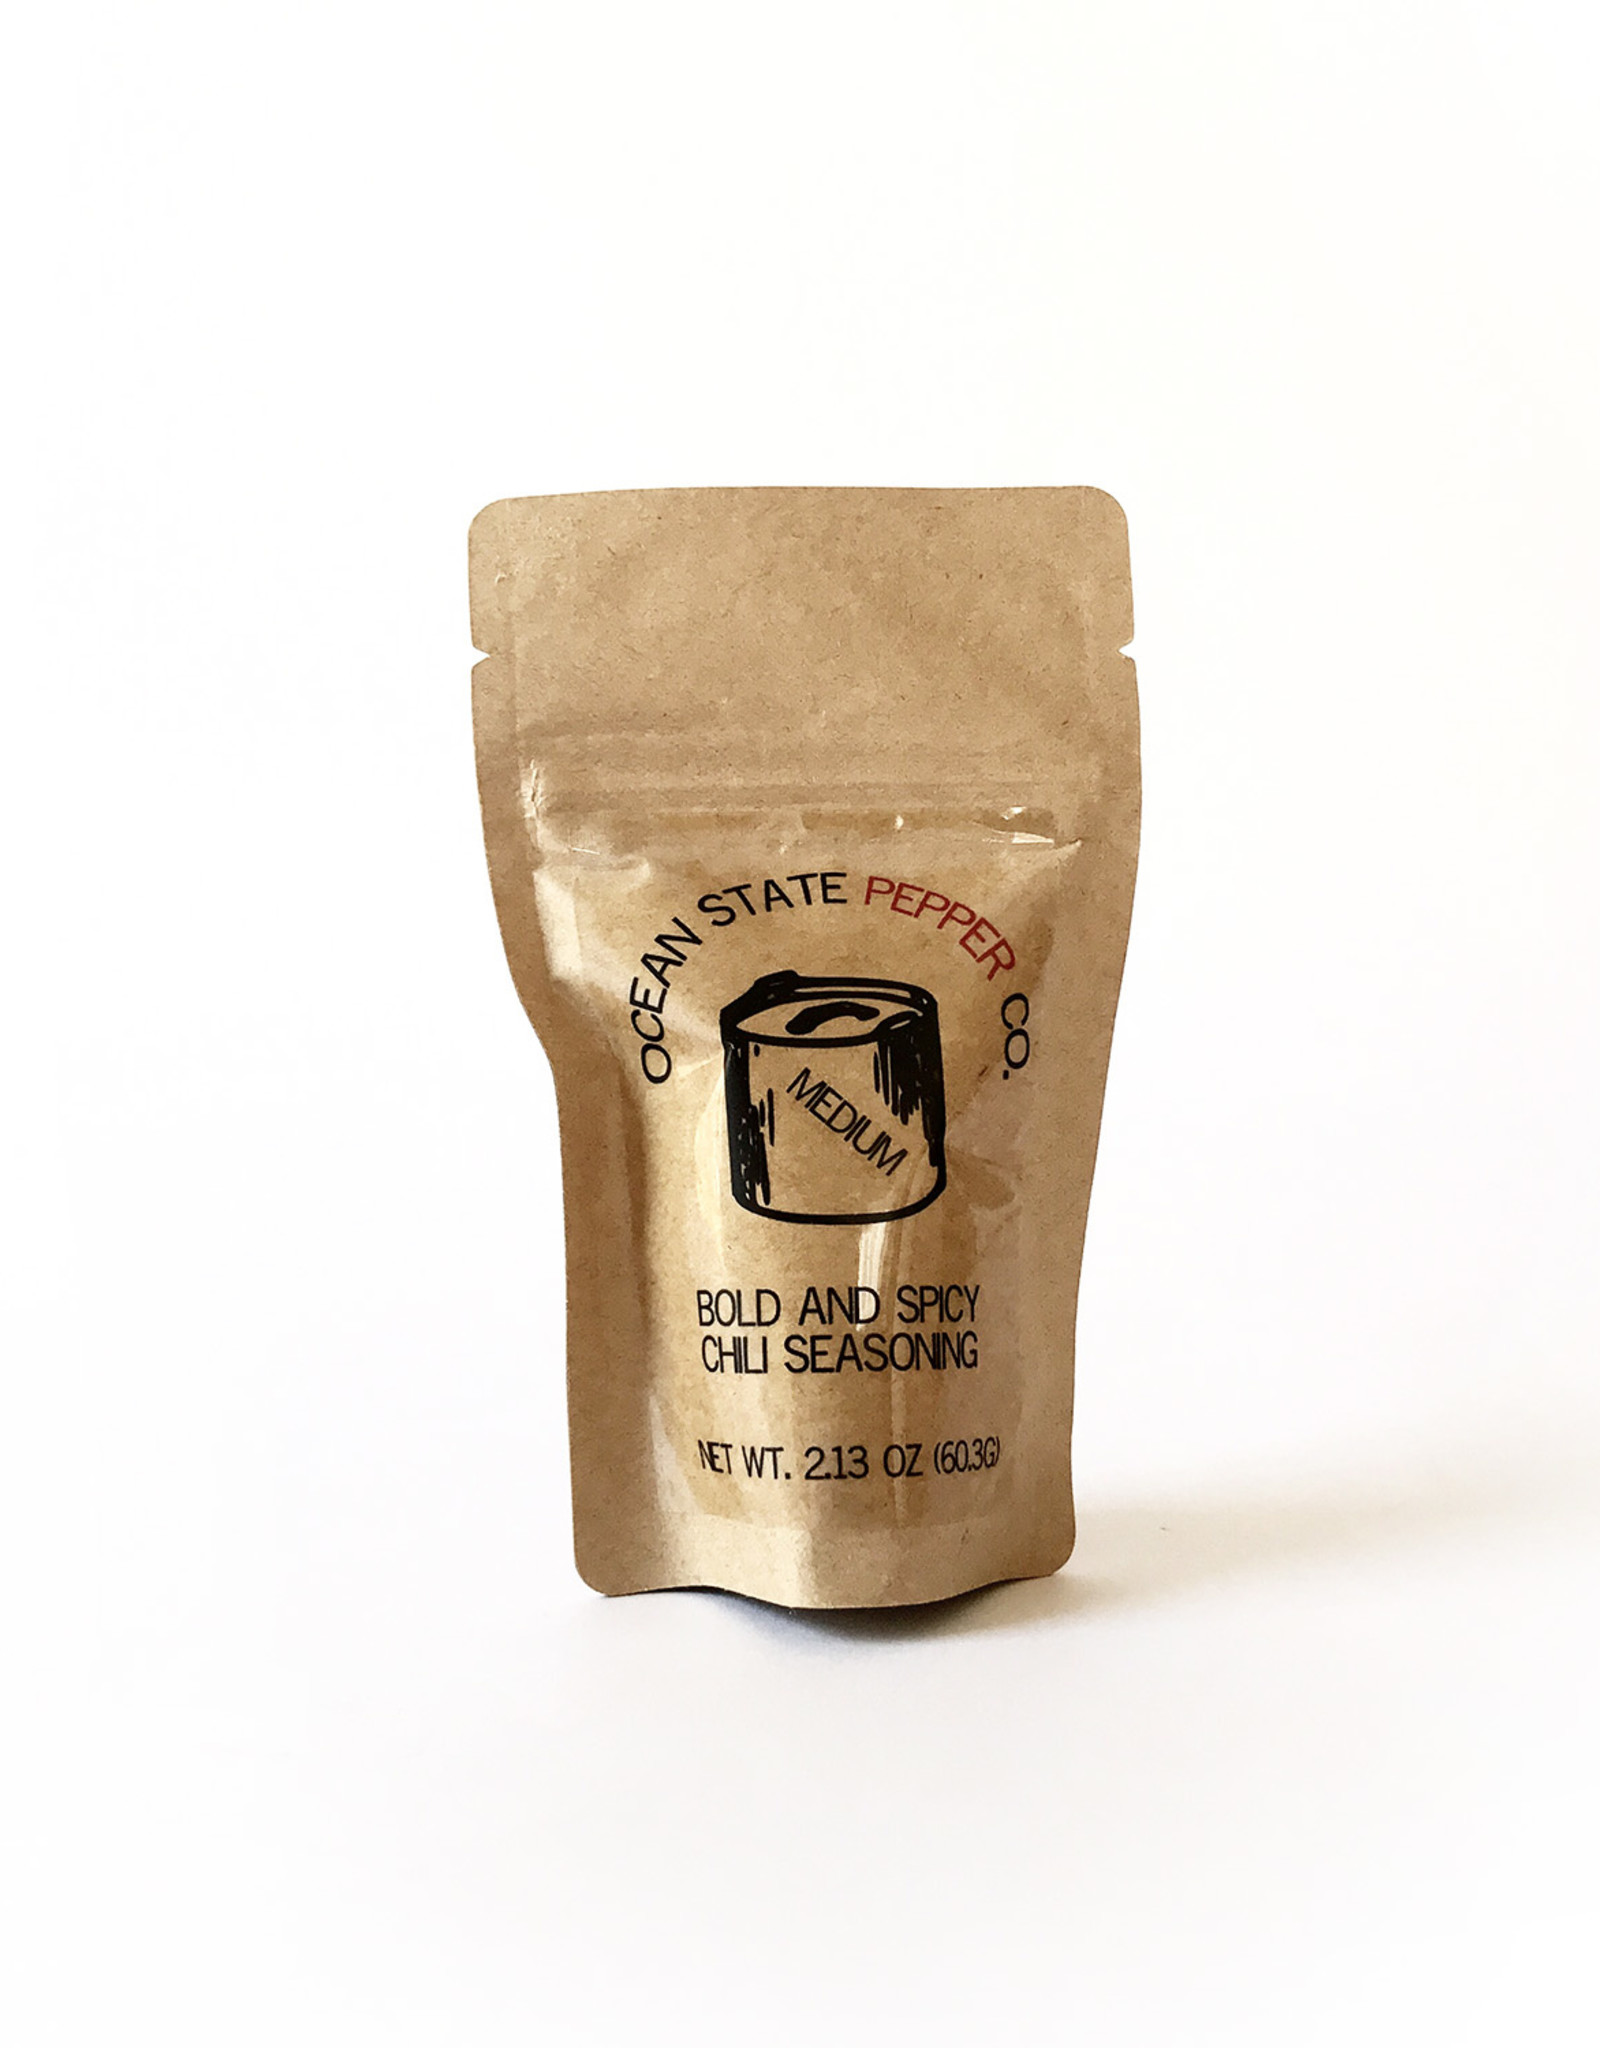 Ocean State Pepper Co. Ocean State Pepper Co. Pouches